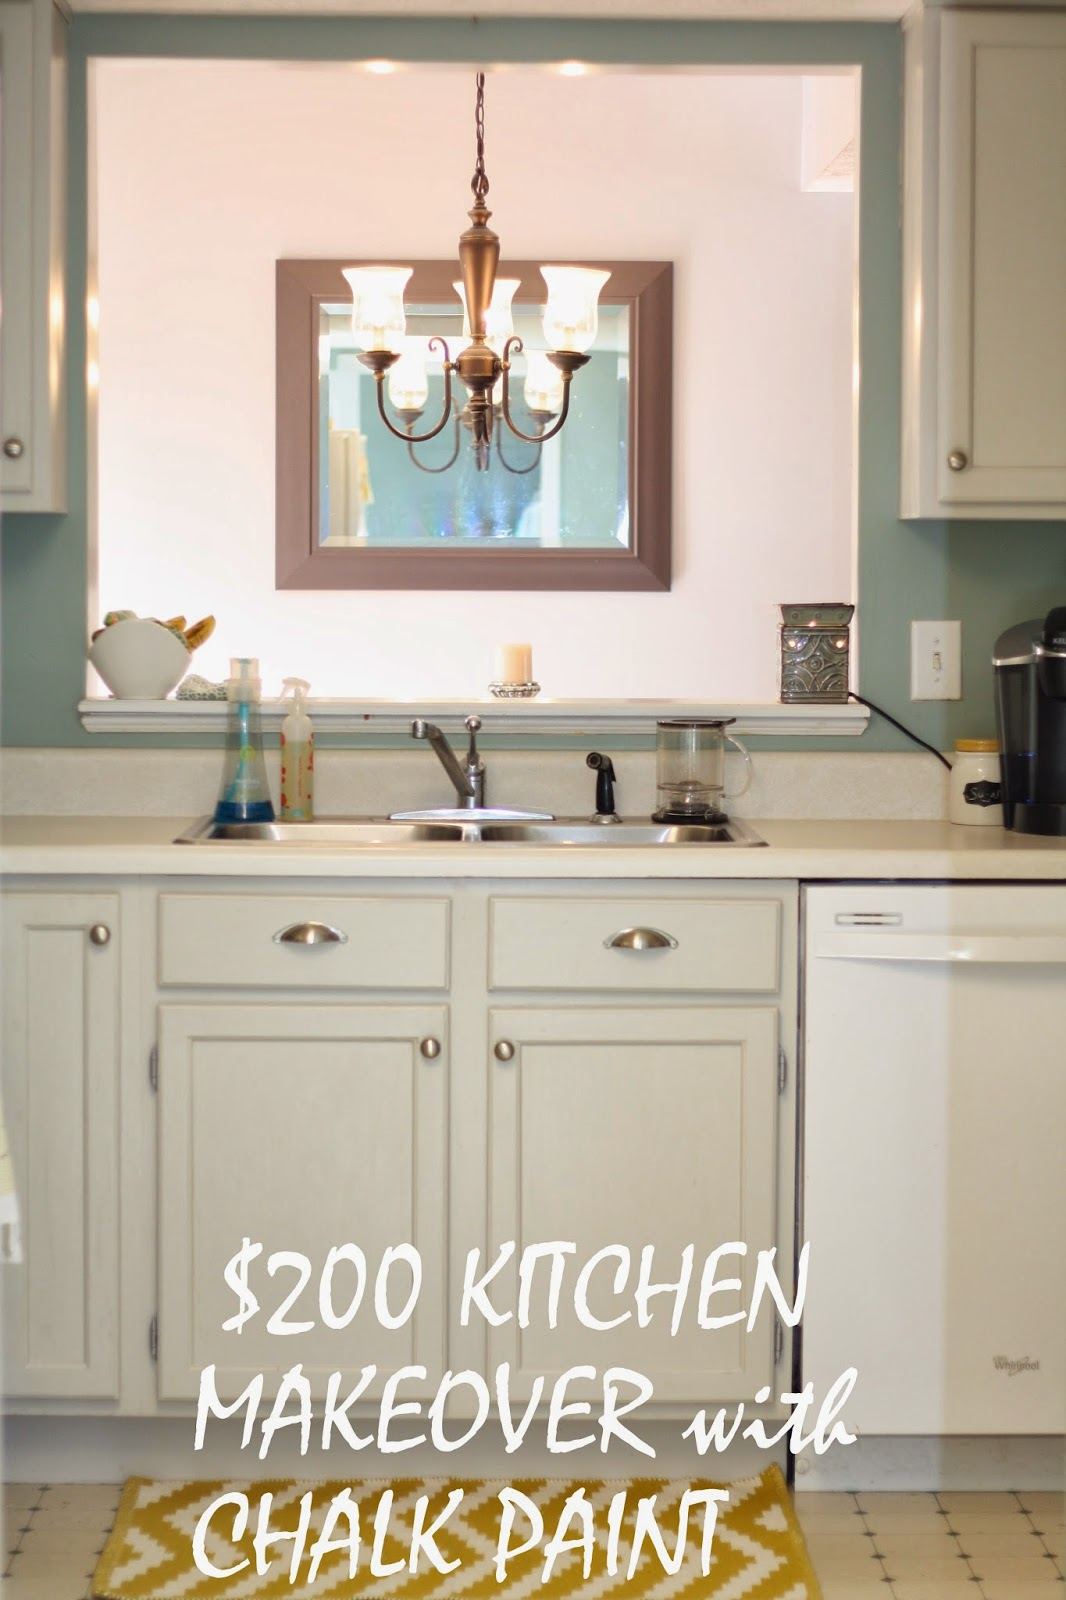 Domestic Mother: Maison Blanche Kitchen Cabinet Makeover!